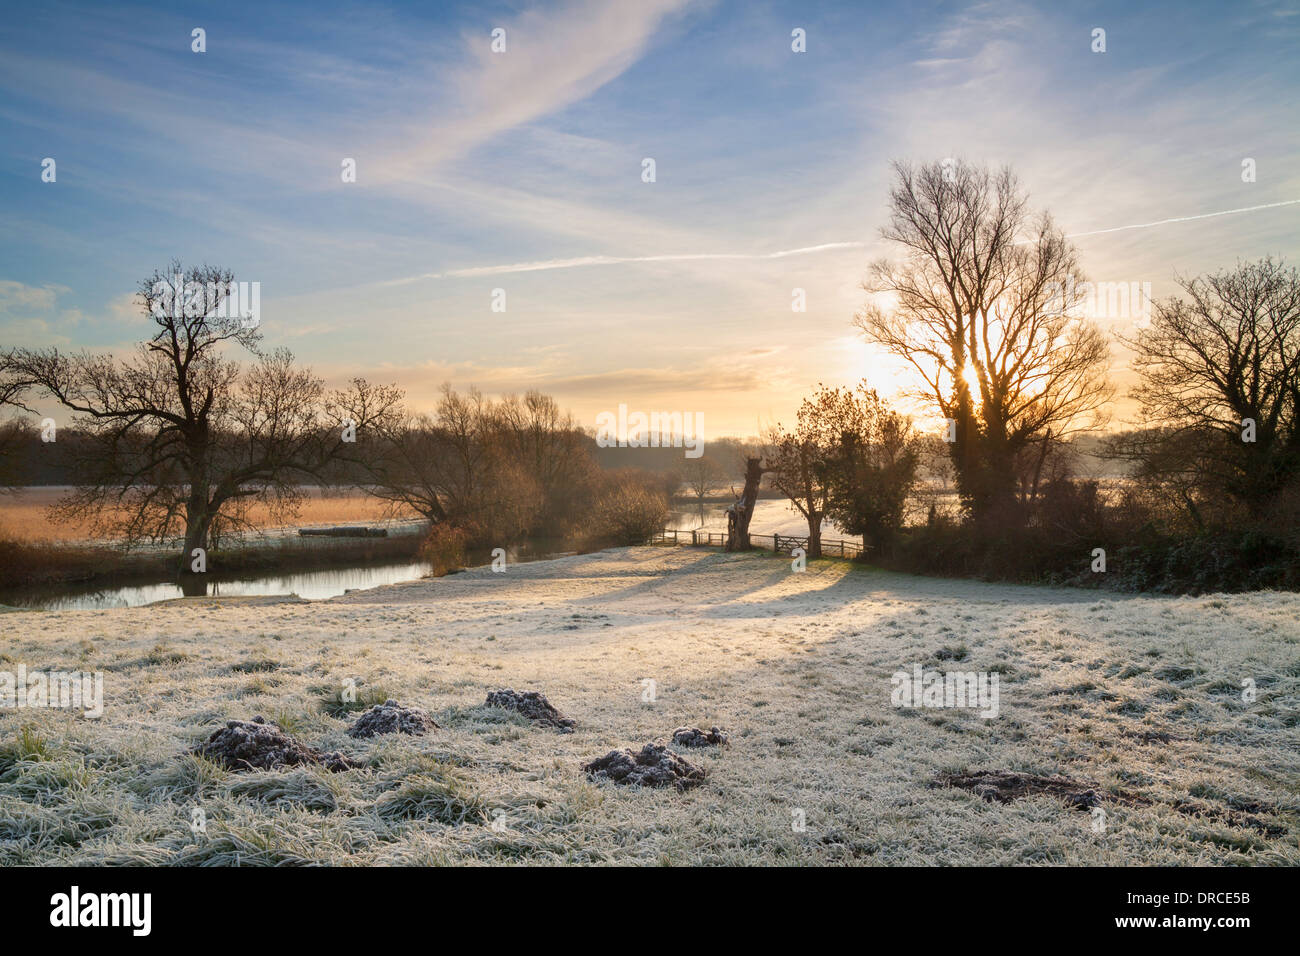 Frosty morning Grantchester meadows, Cambridge, UK - Stock Image